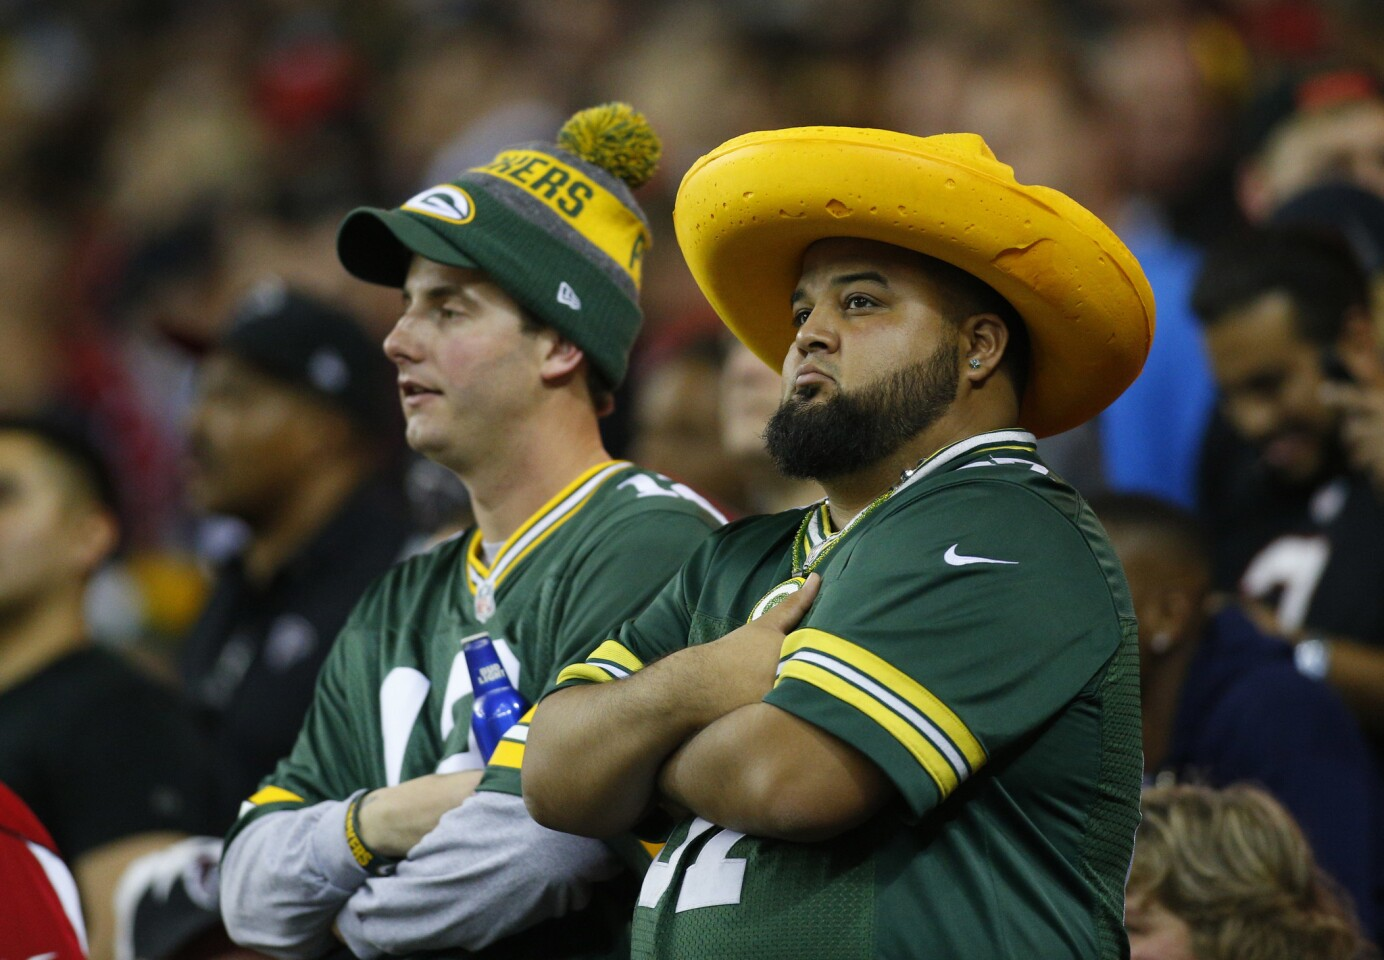 Jan 22, 2017; Atlanta, GA, USA; Green Bay Packers fans react during the fourth quarter against the Atlanta Falcons in the 2017 NFC Championship Game at the Georgia Dome. Mandatory Credit: Brett Davis-USA TODAY Sports ** Usable by SD ONLY **